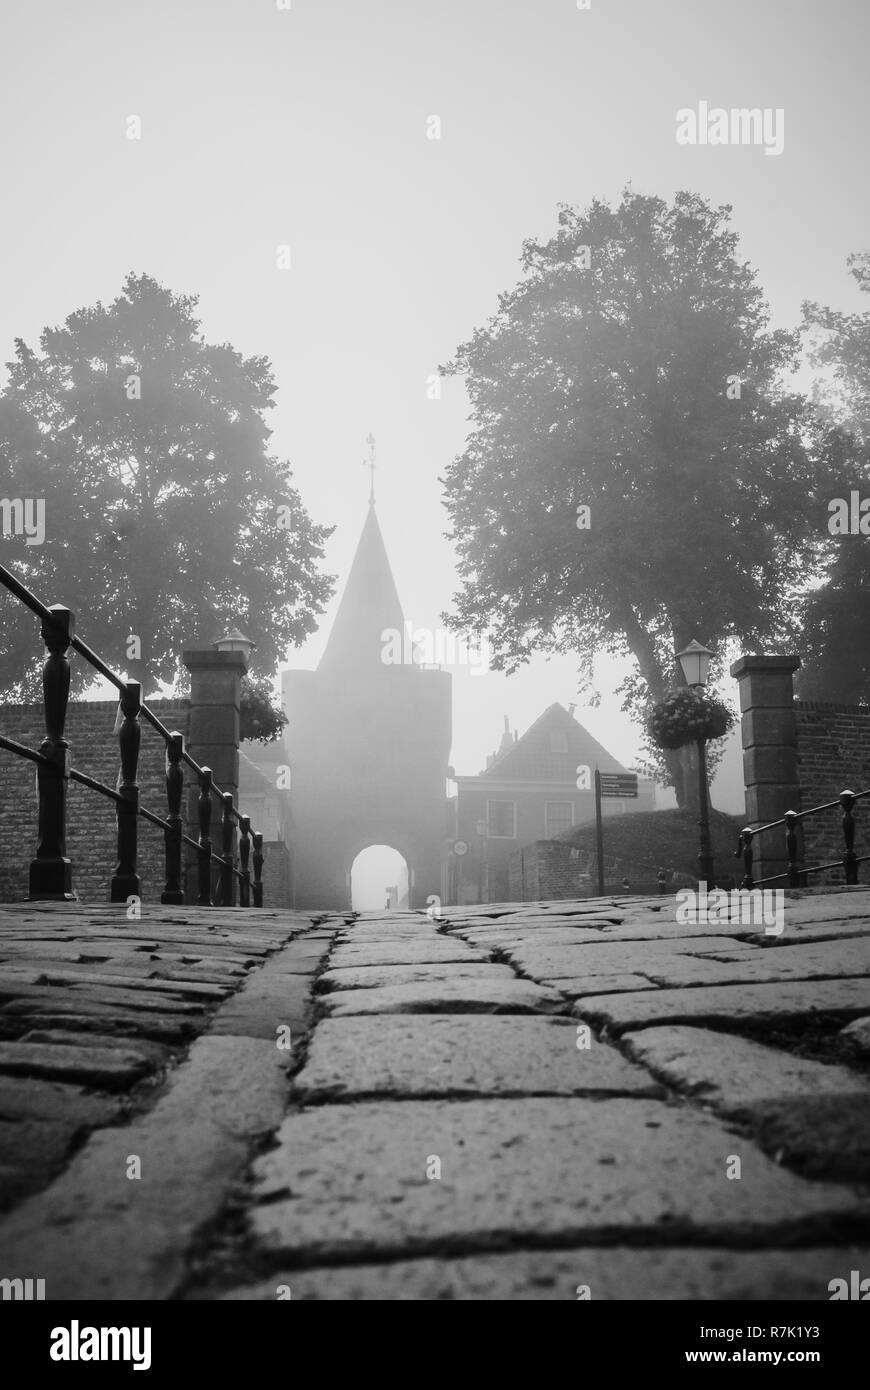 Access through the gate to the fortress town, elburg, gelderland, Netherlands at misty morning - Stock Image